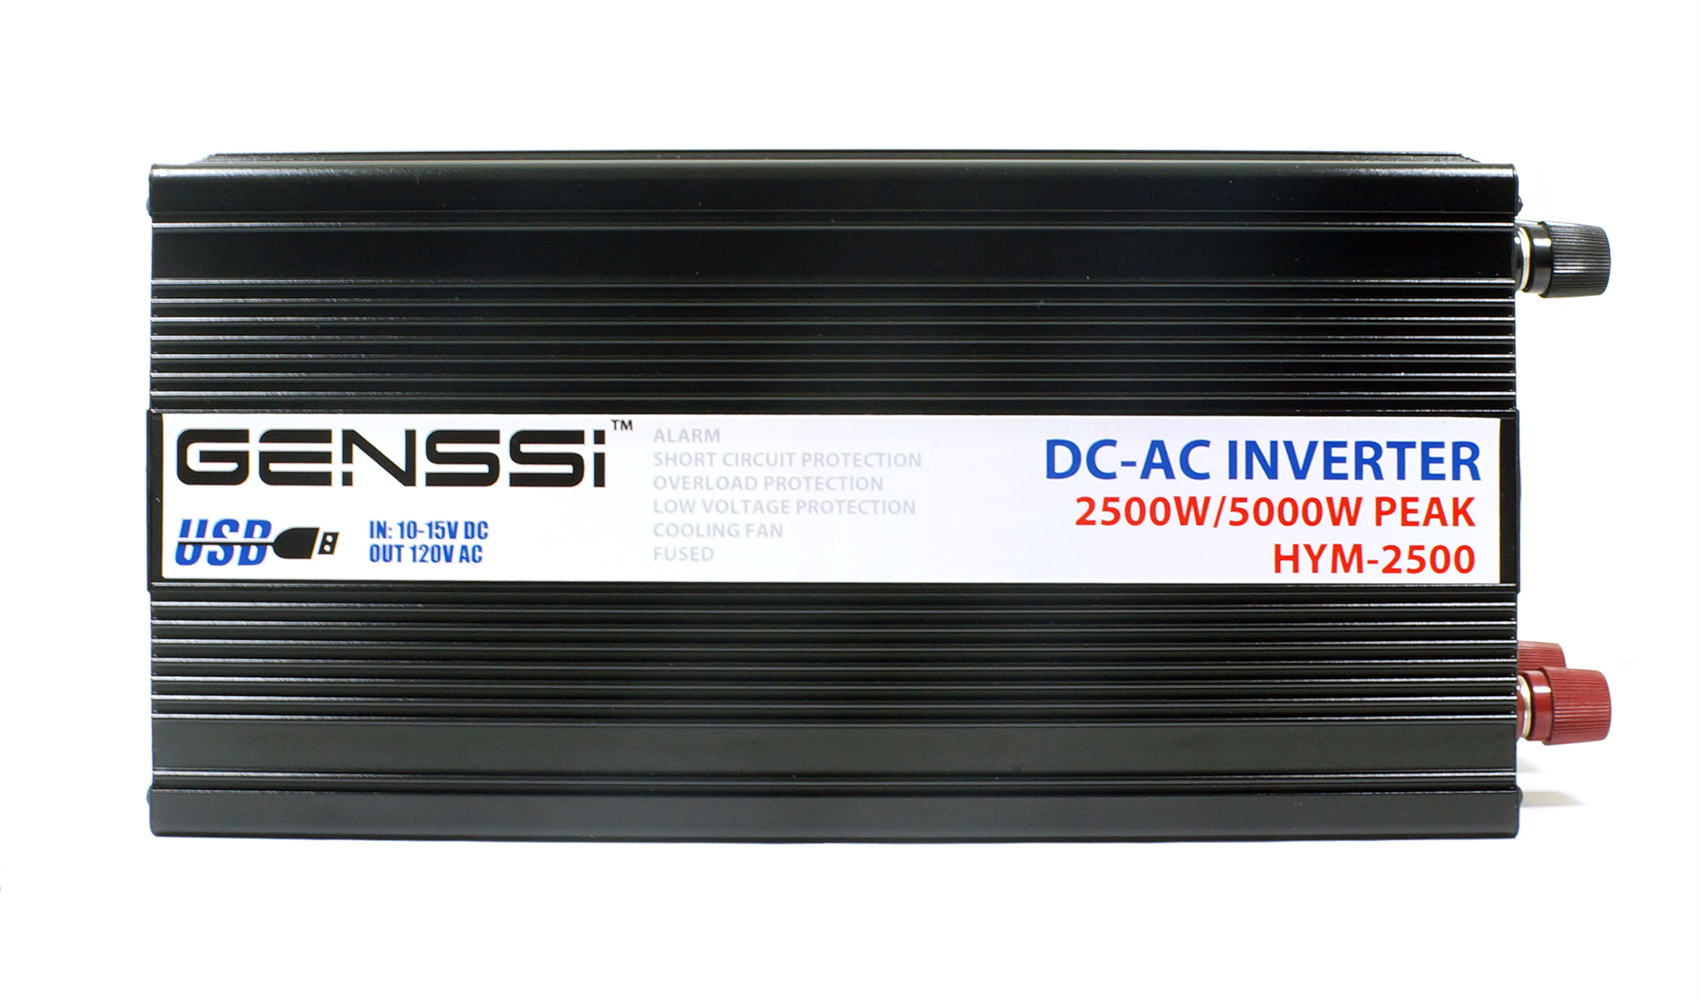 #AB2B20 GENSSI 2500 5000 Watt Power Inverter Car 12V DC To 120V  Best 4823 Inverter Window Ac photos with 1700x1002 px on helpvideos.info - Air Conditioners, Air Coolers and more